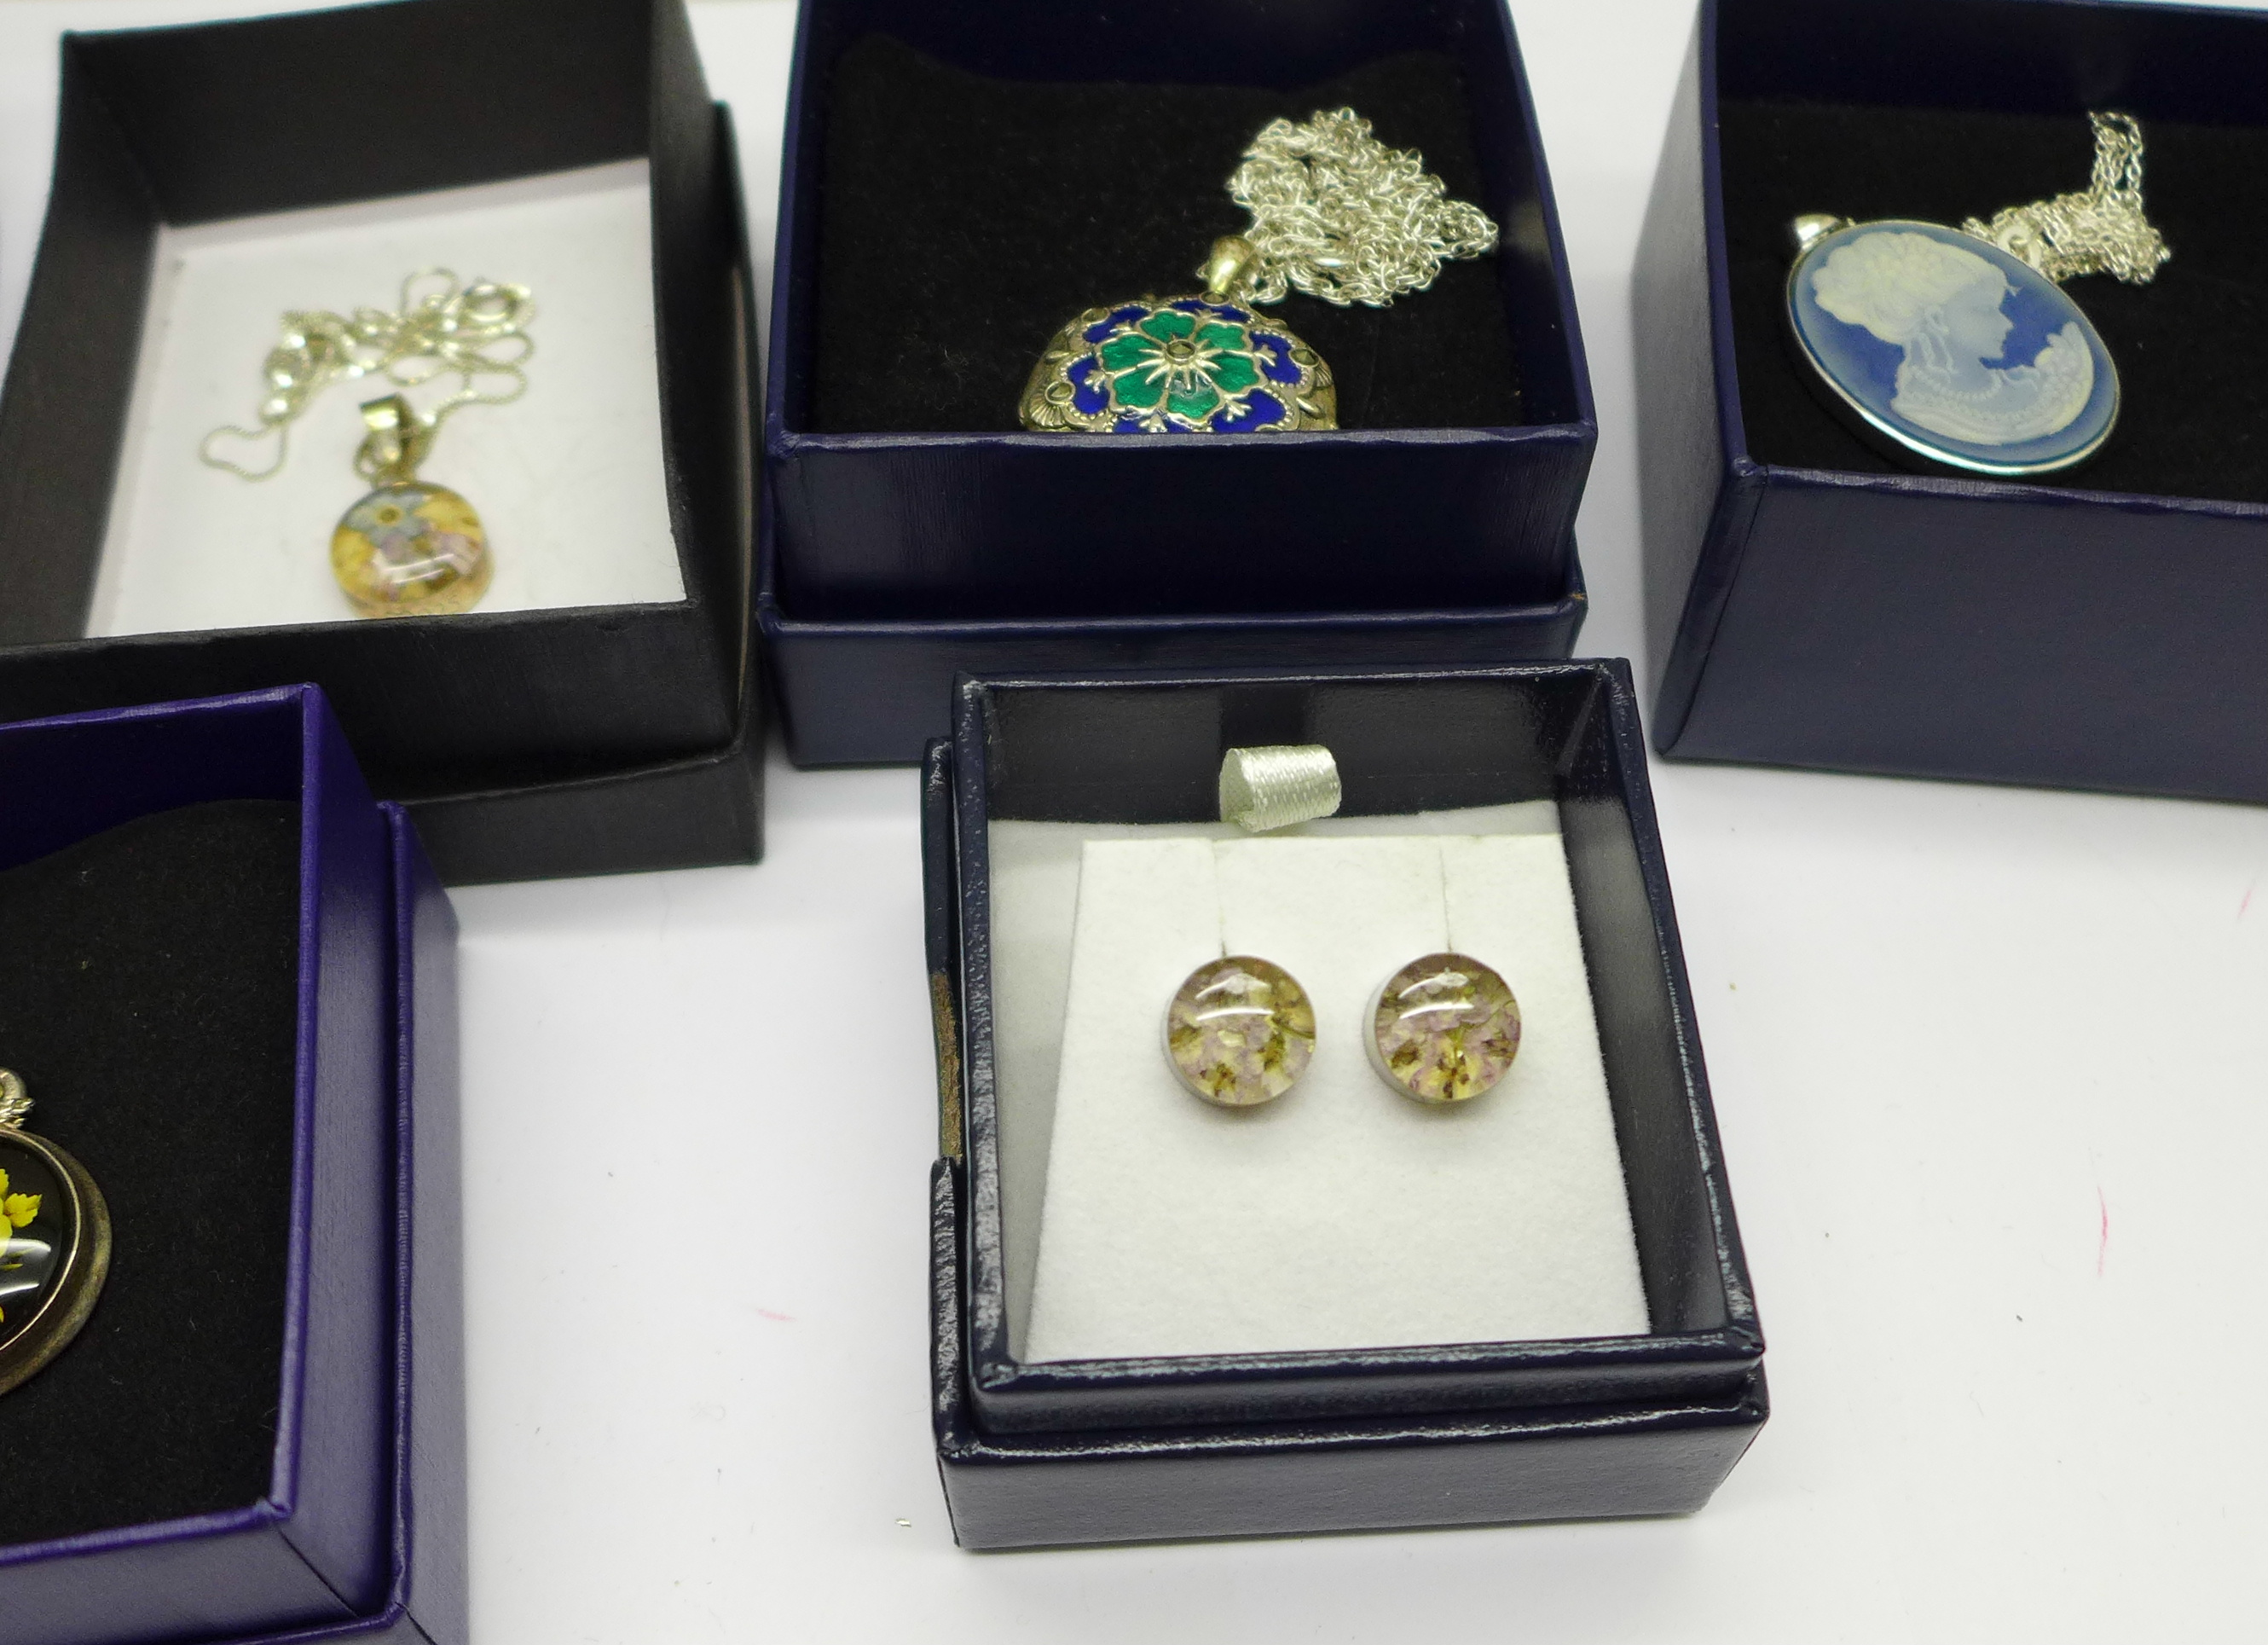 Seven items of silver jewellery, boxed - Image 4 of 4